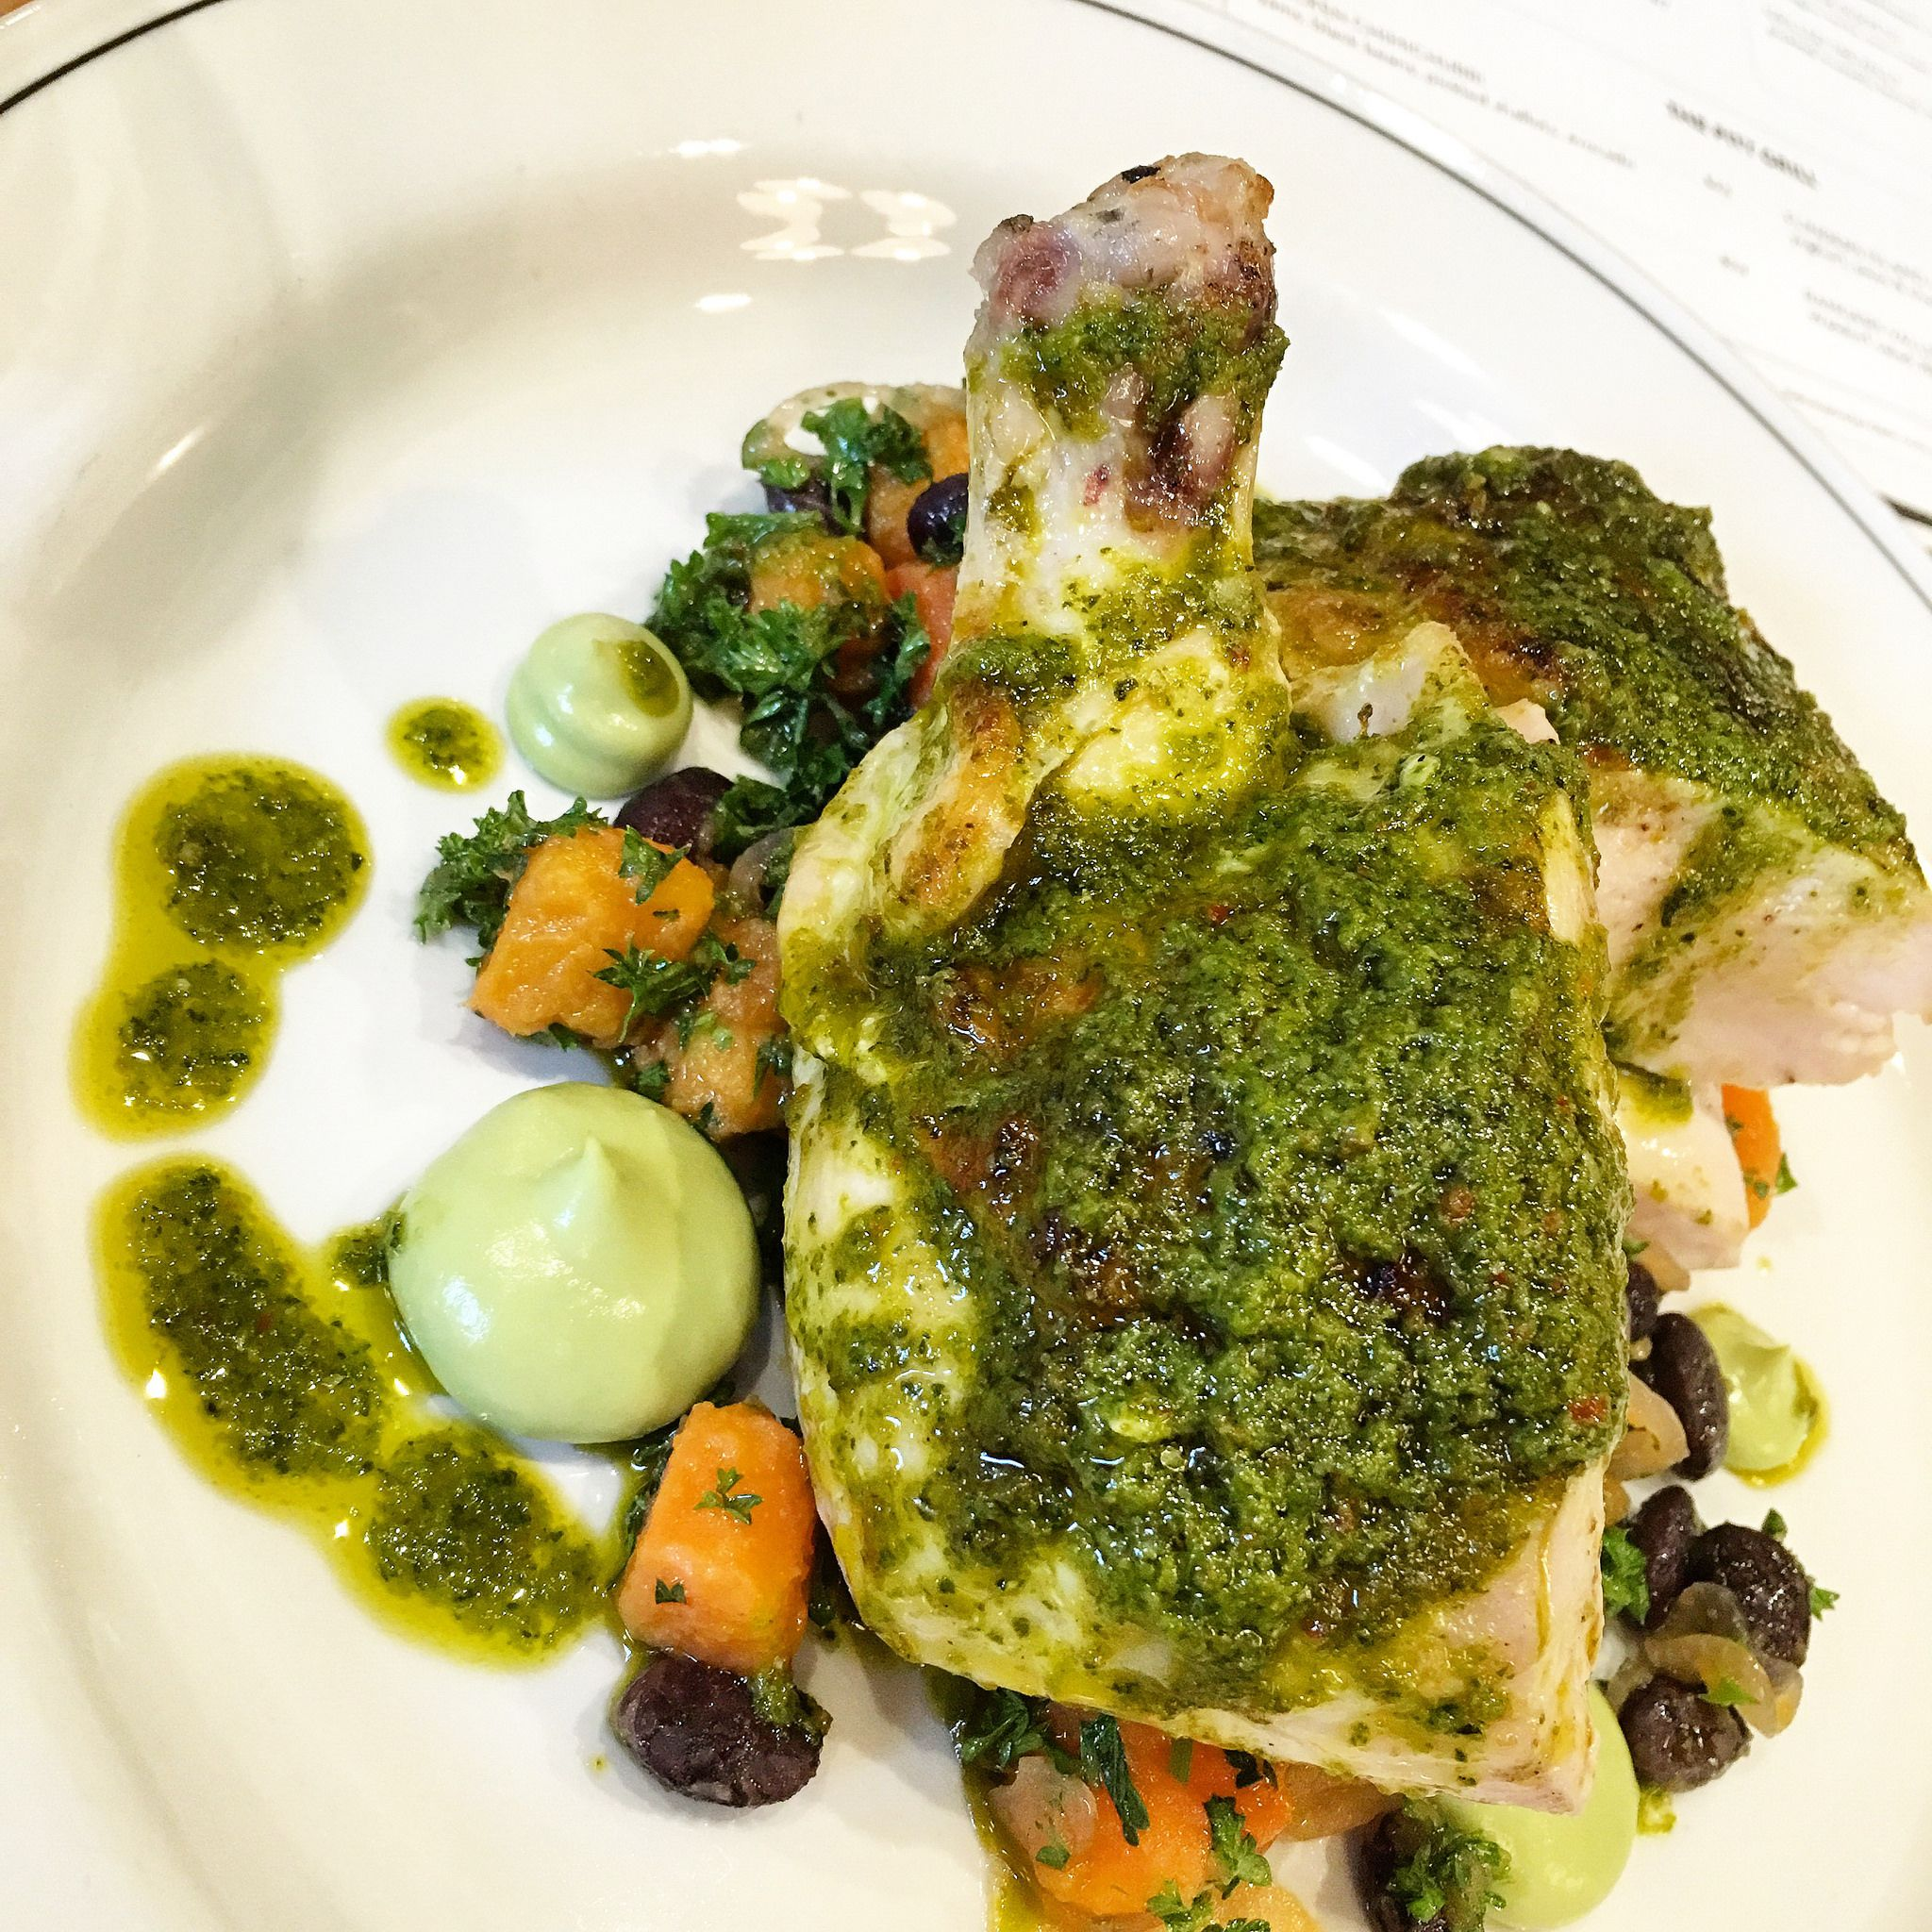 Chimichurri Chicken At Nieuw Amsterdam In Melbourne